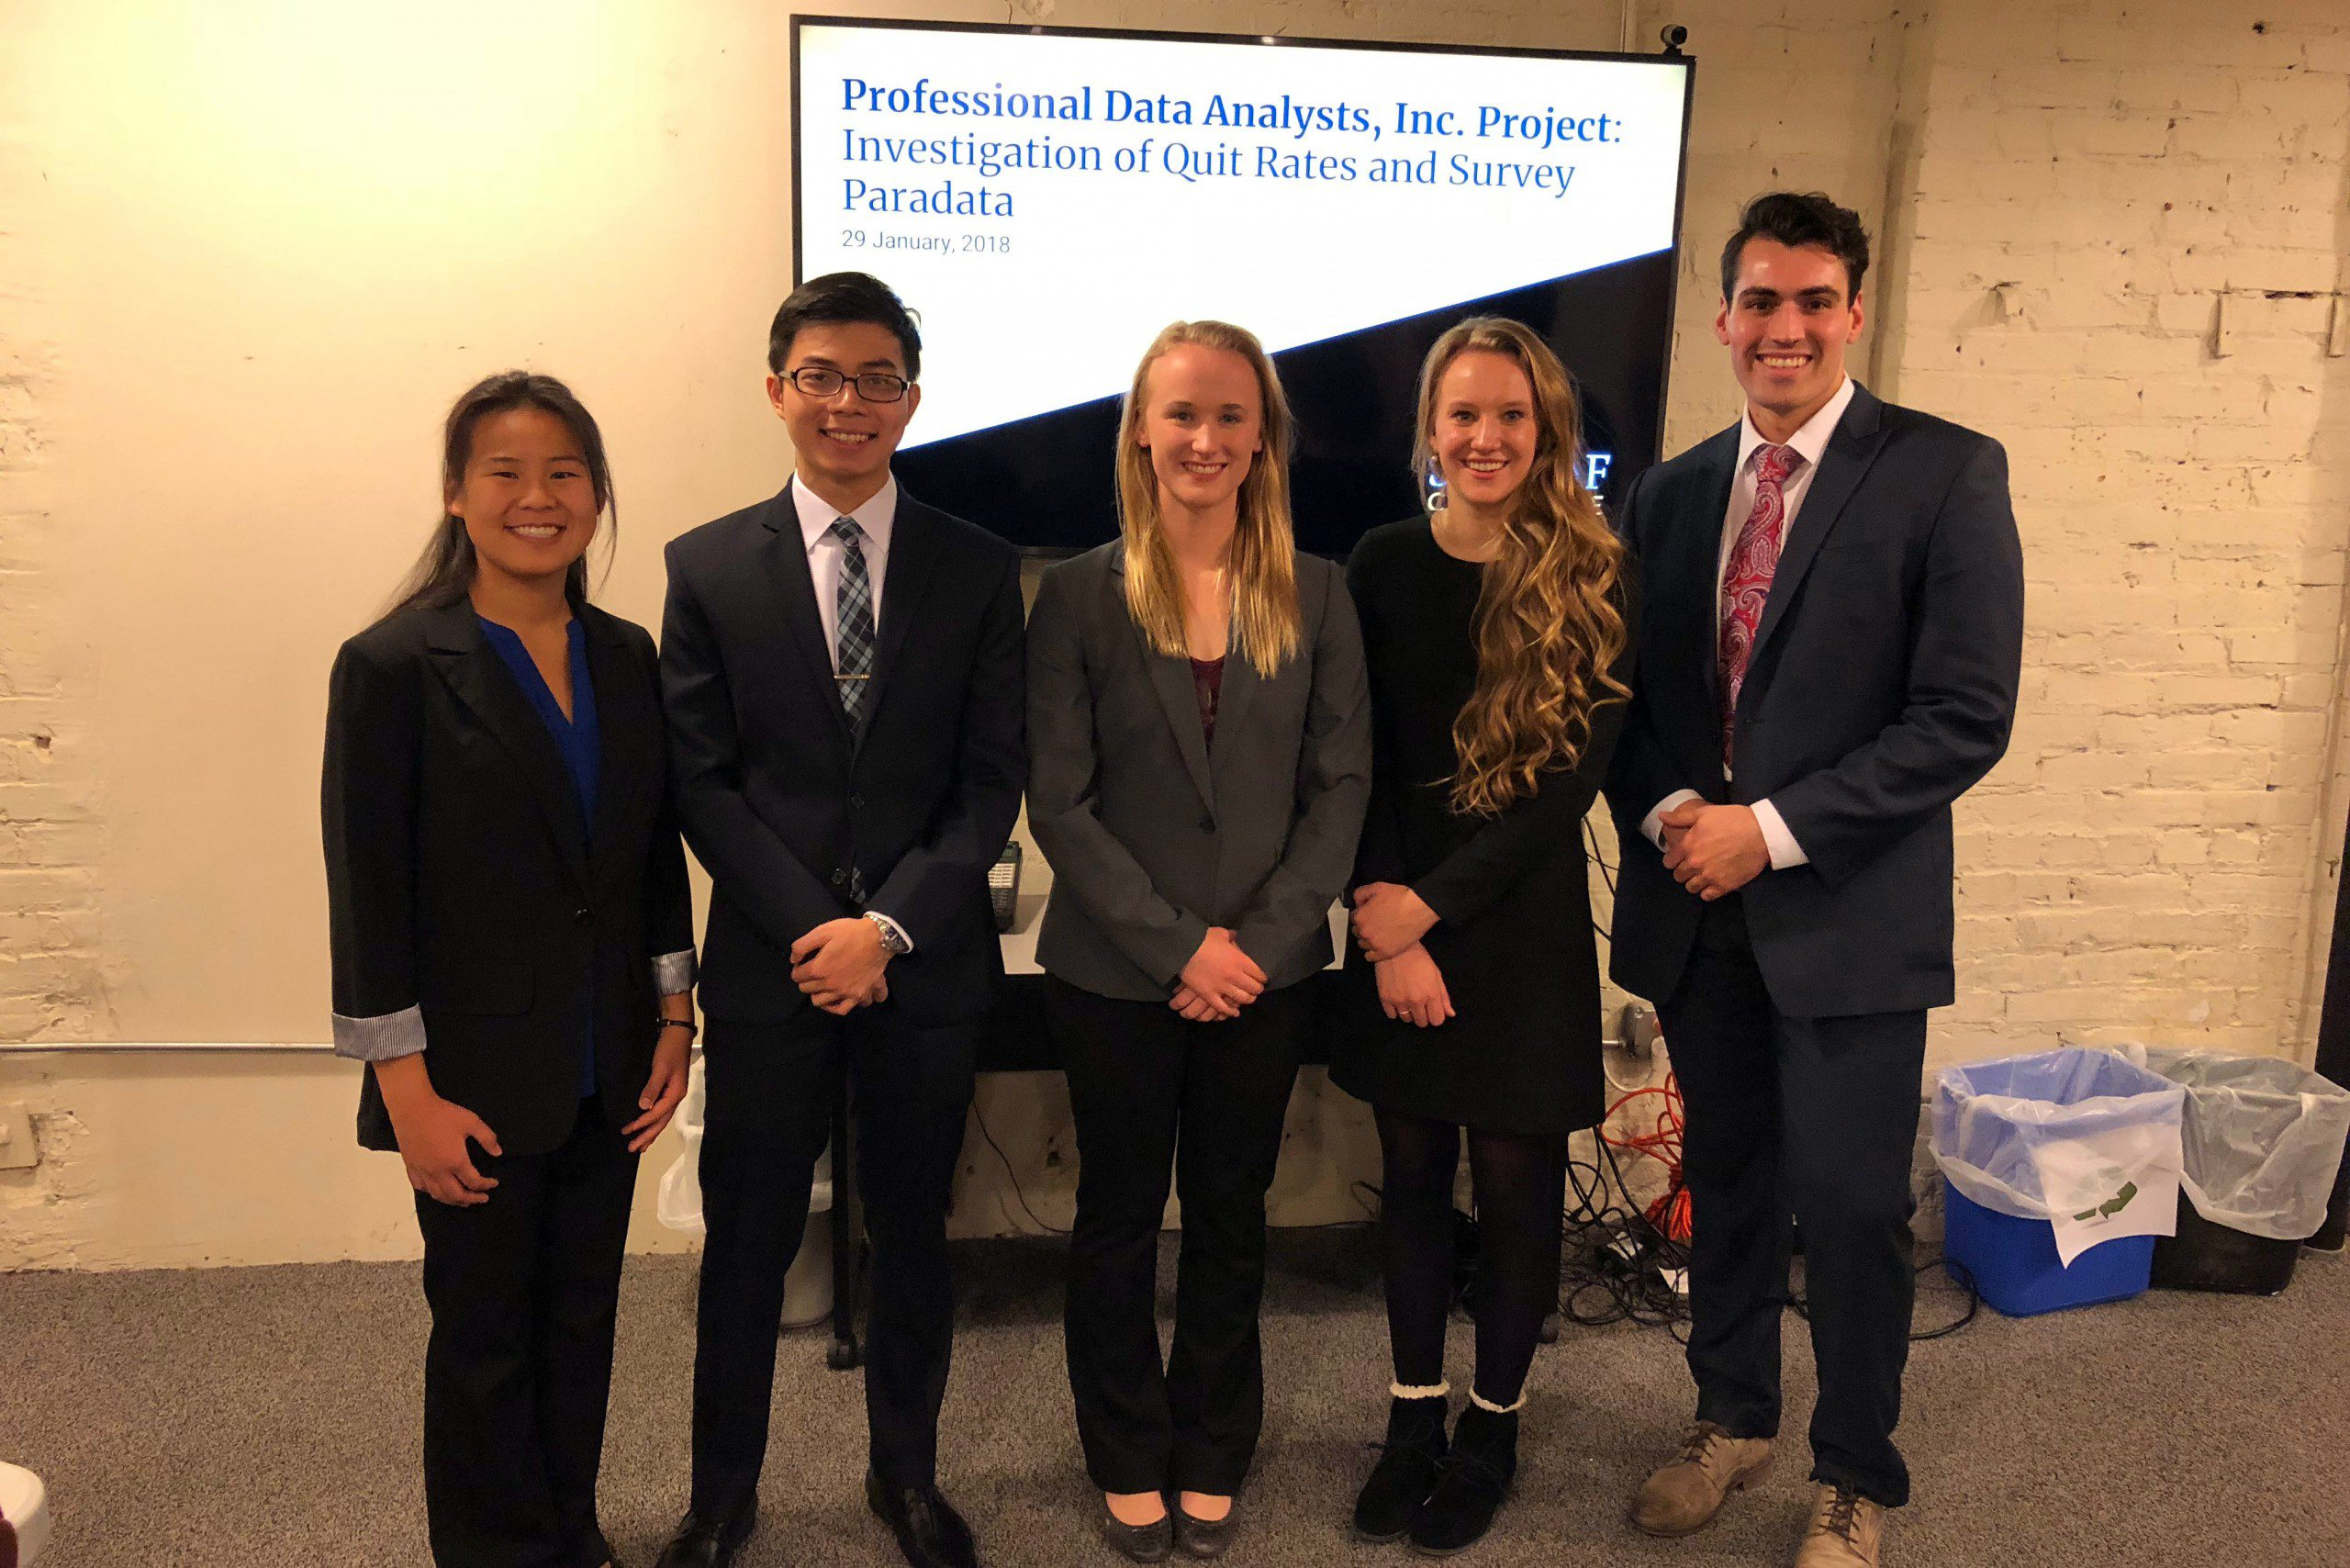 Portrait of (left to right) Leah Andrews, Cuong Quoc Nguyen, Rose Peterson, Kalley Johnson, and Quinton Neville in front of a television screen with their MSCS Practicum presentation.